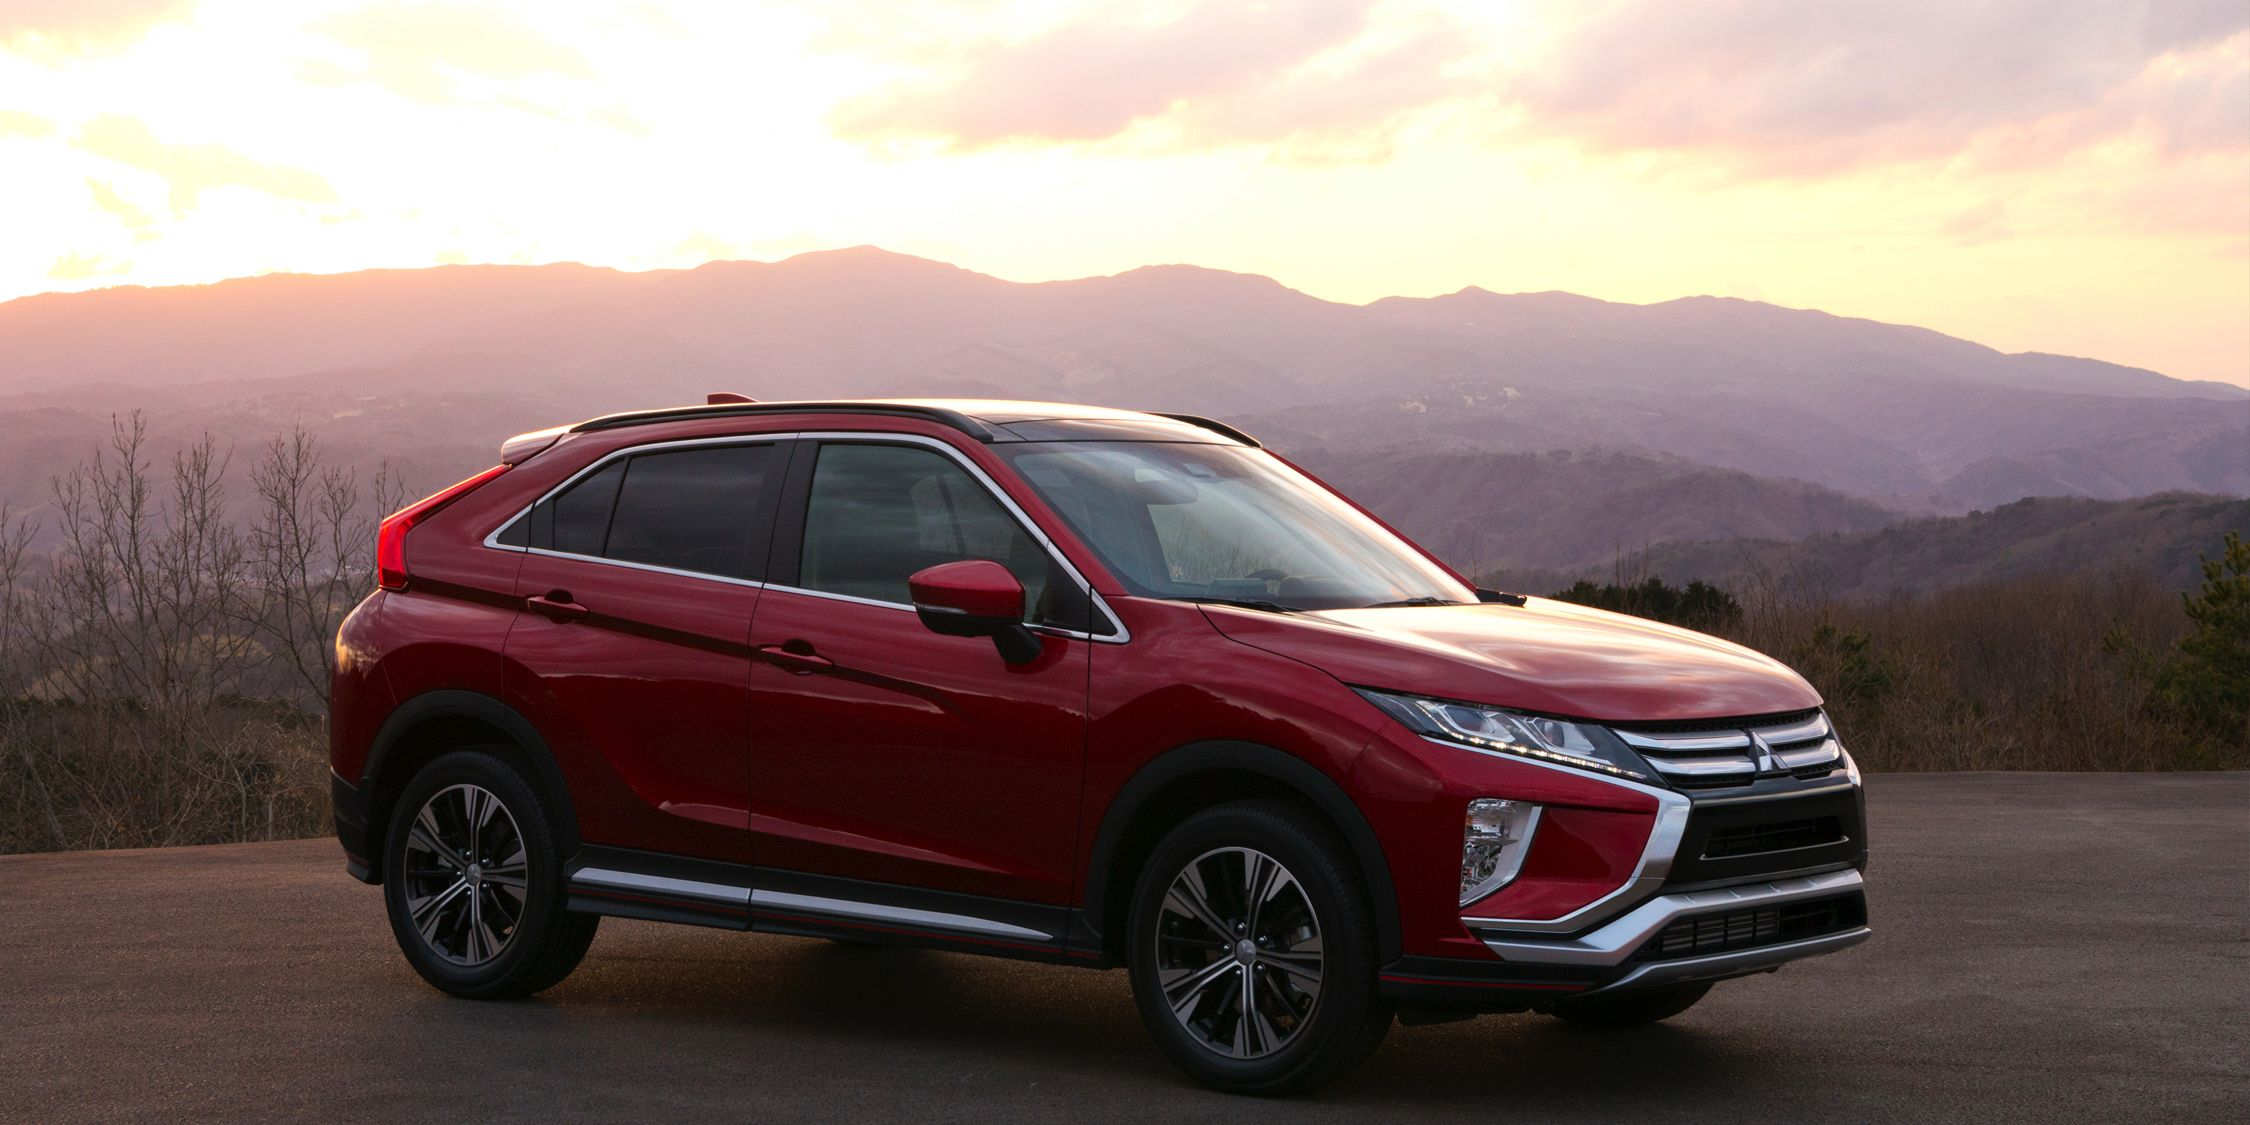 2018 Mitsubishi Eclipse Cross Photos And Info News Car And Driver